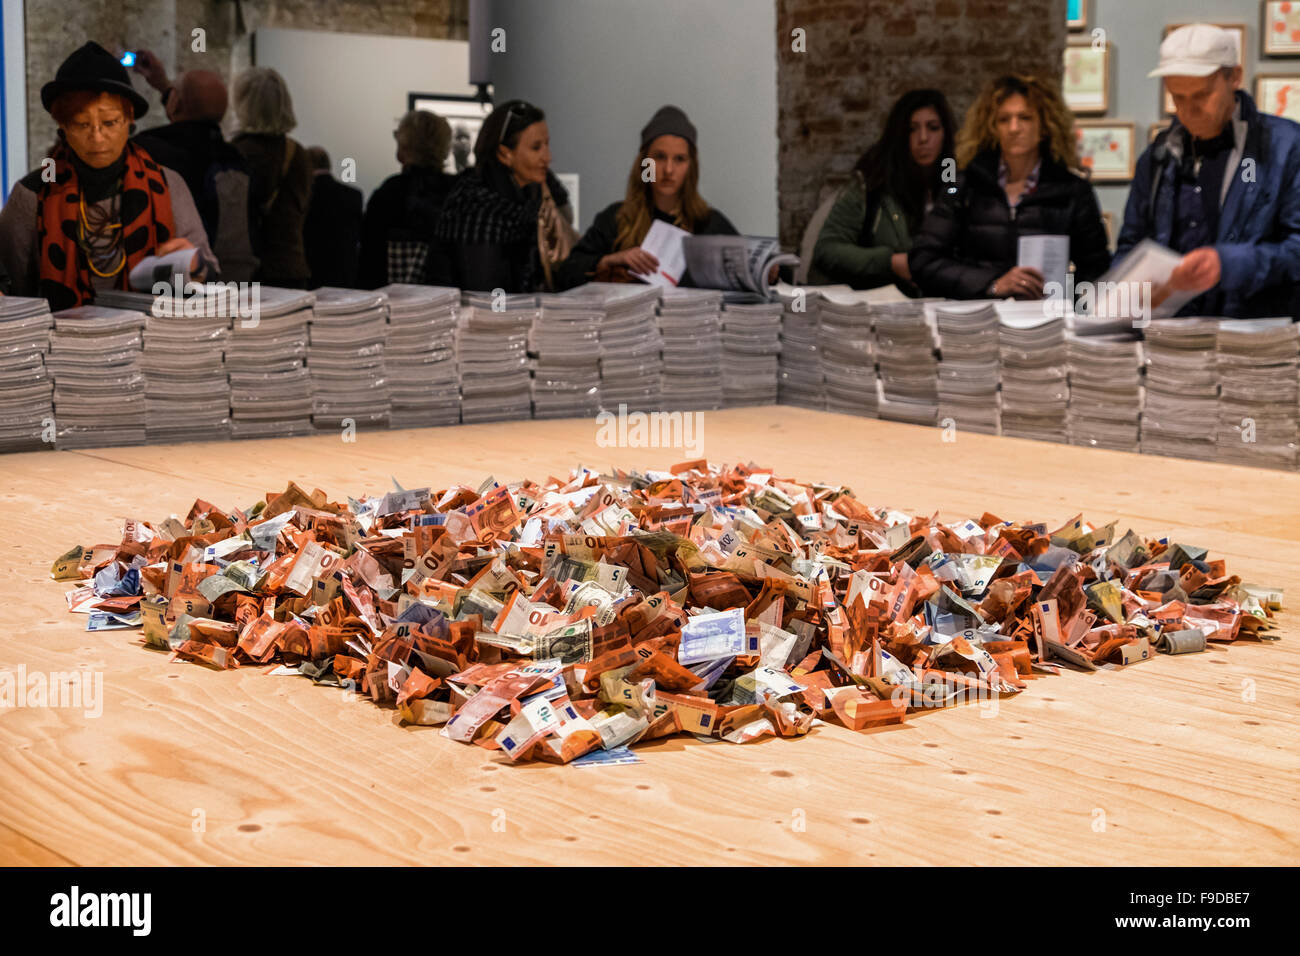 Marco Fusinato's artwork 'From the Horde to the Bee' - People throw euro notes into display to buy a - Stock Image